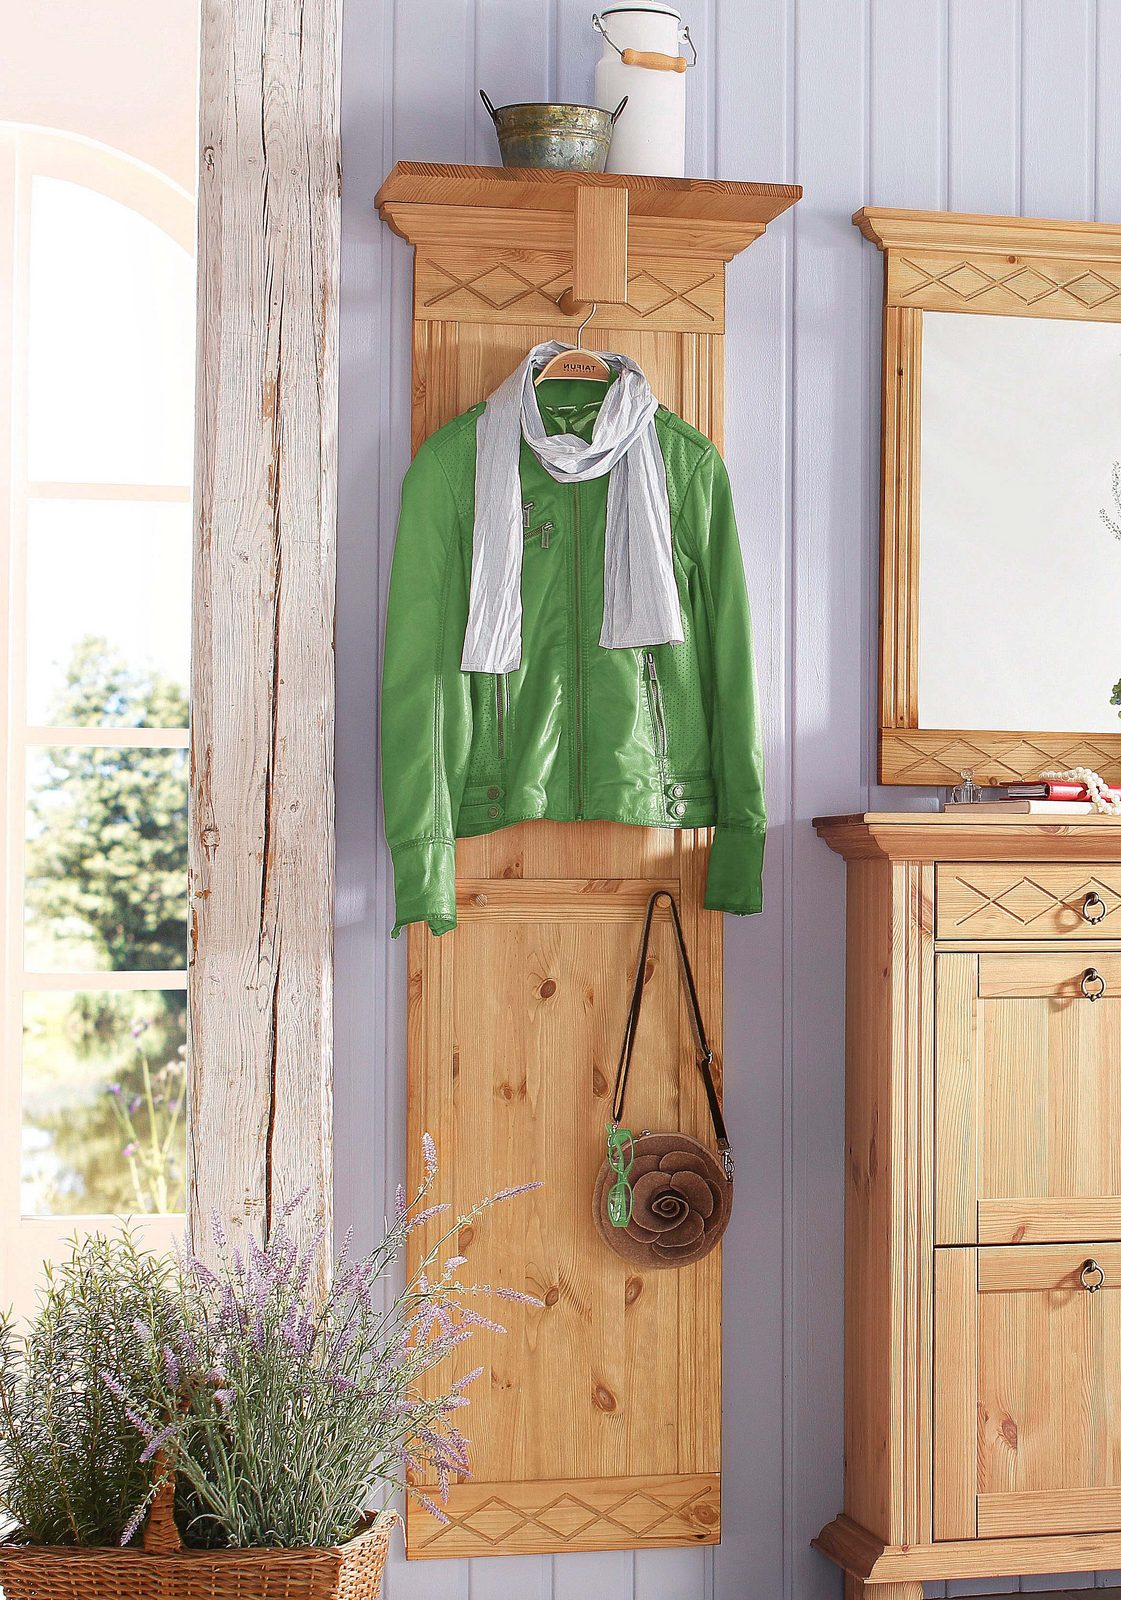 Home affaire, Garderobe »Helma«